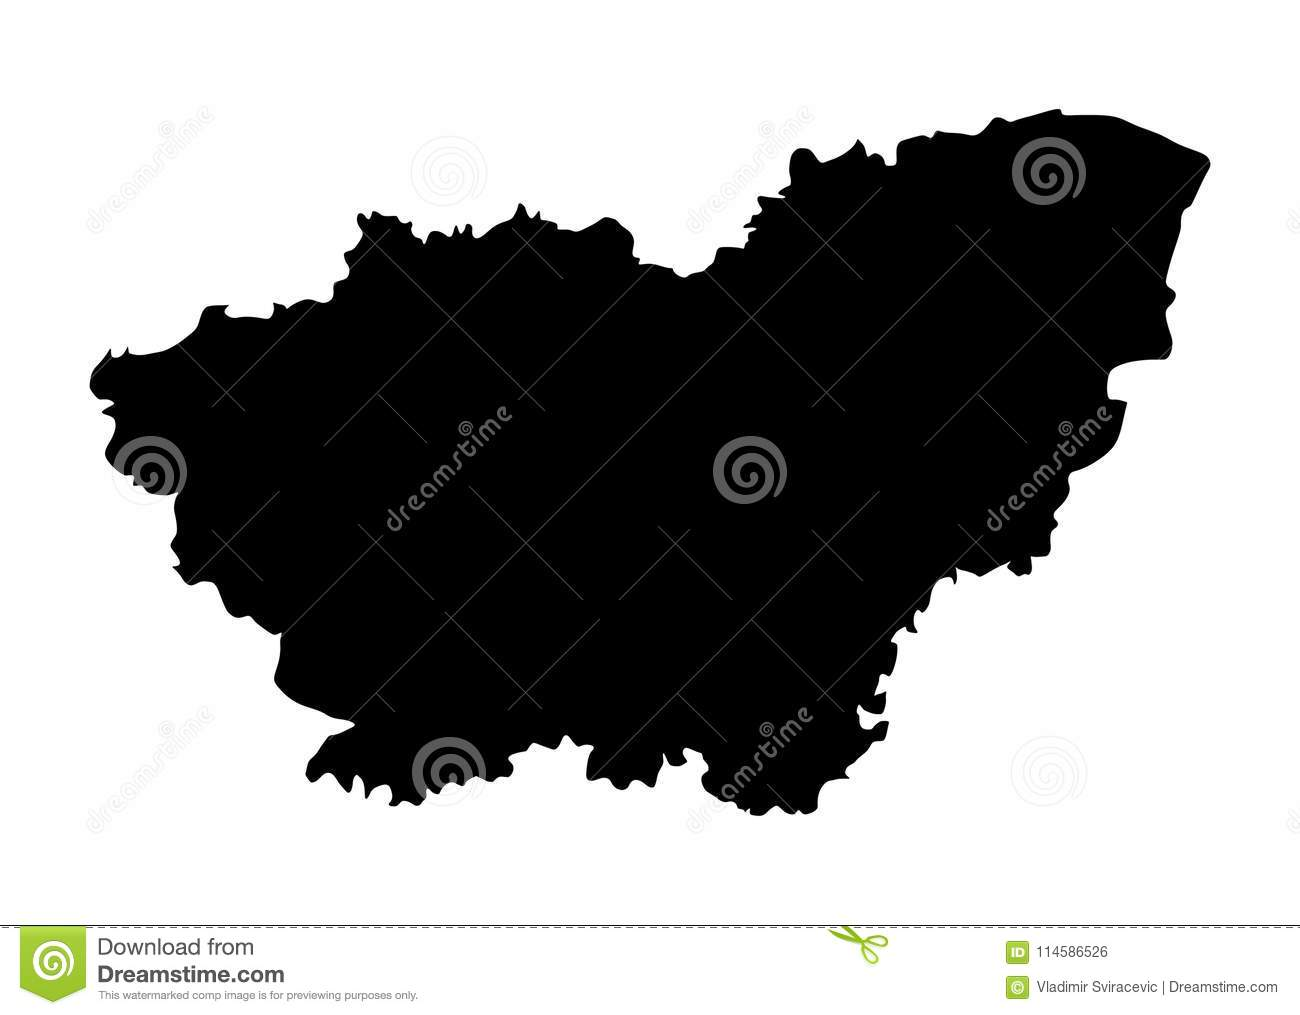 Map Of England Showing Yorkshire.South Yorkshire Map Silhouette Stock Illustration Illustration Of